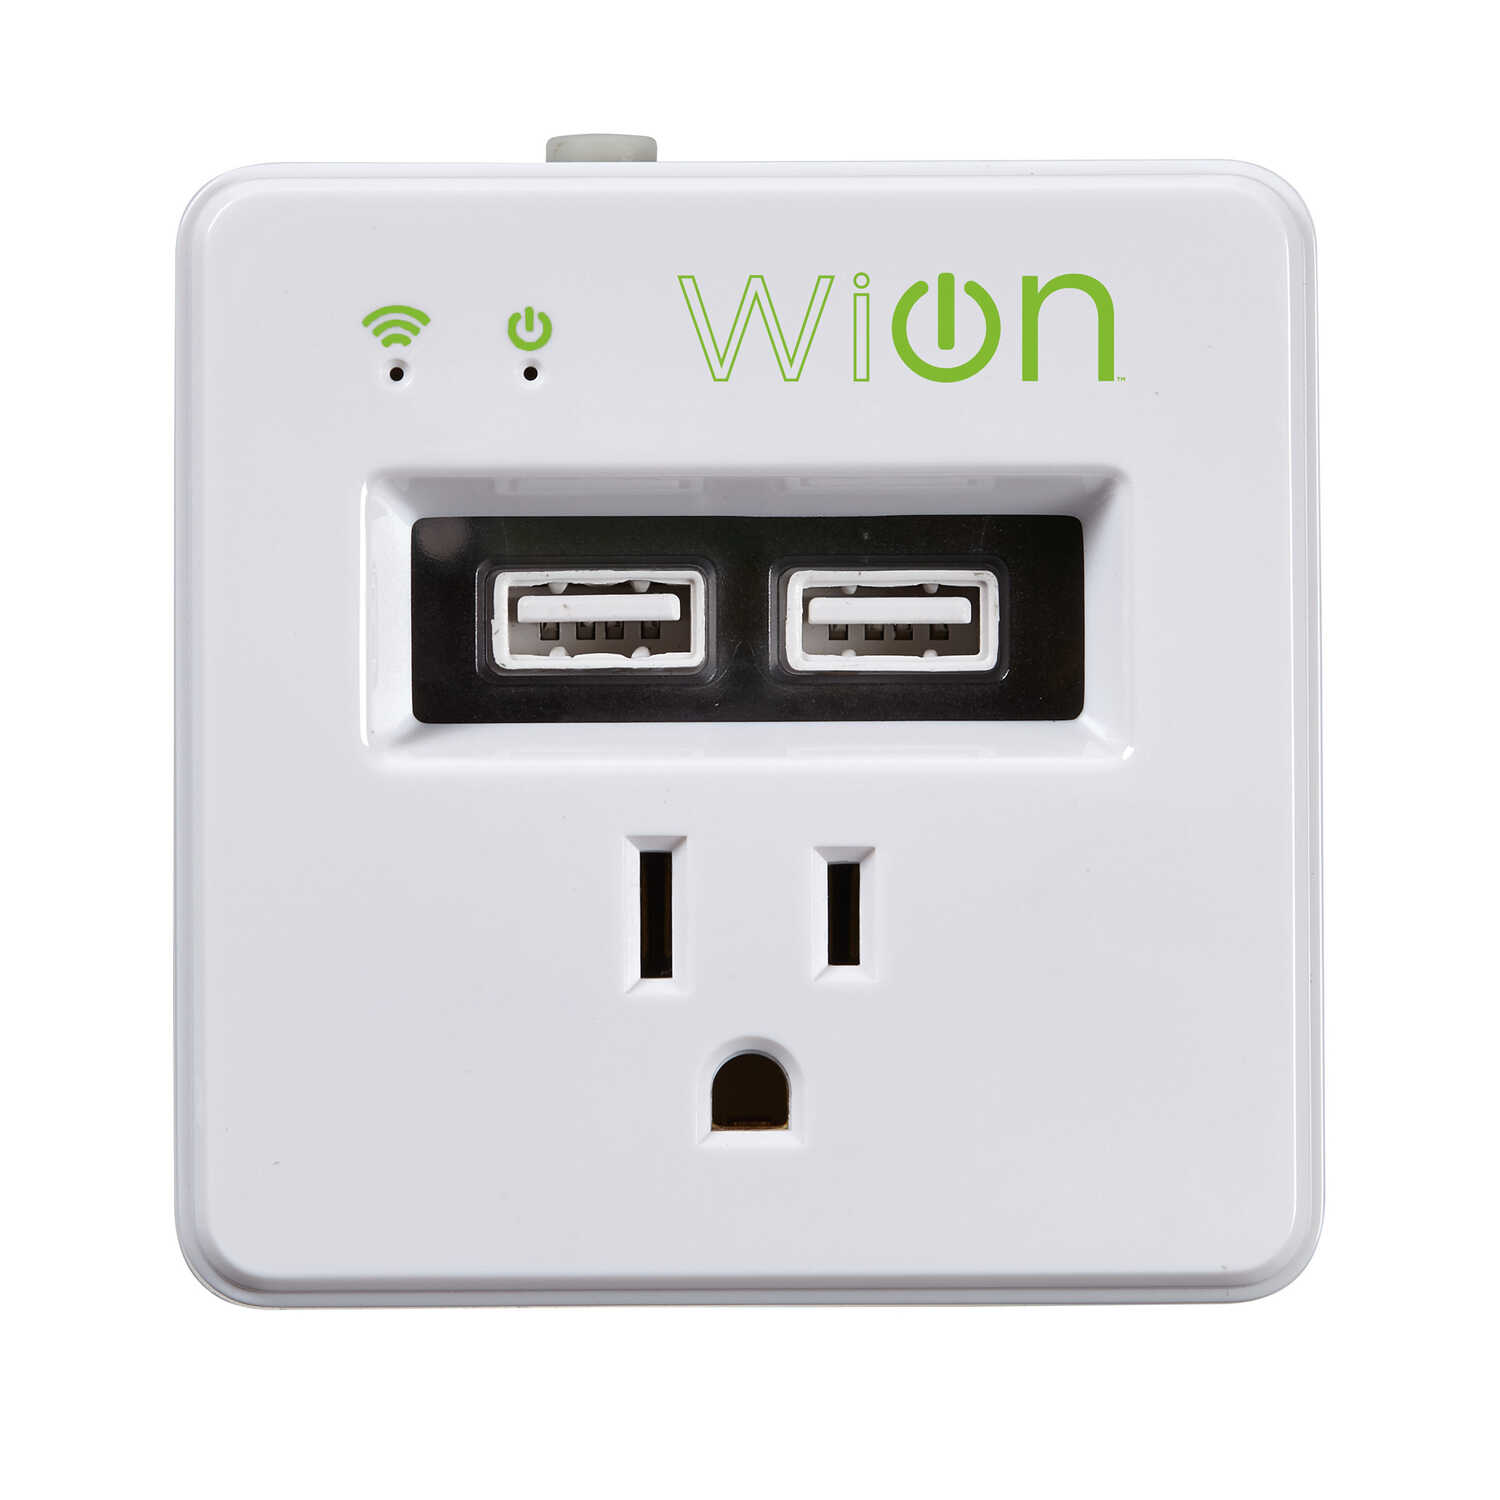 Woods  WiOn  15 amps 125 volts White  Electrical WiFi Outlet  1-15P  1 count